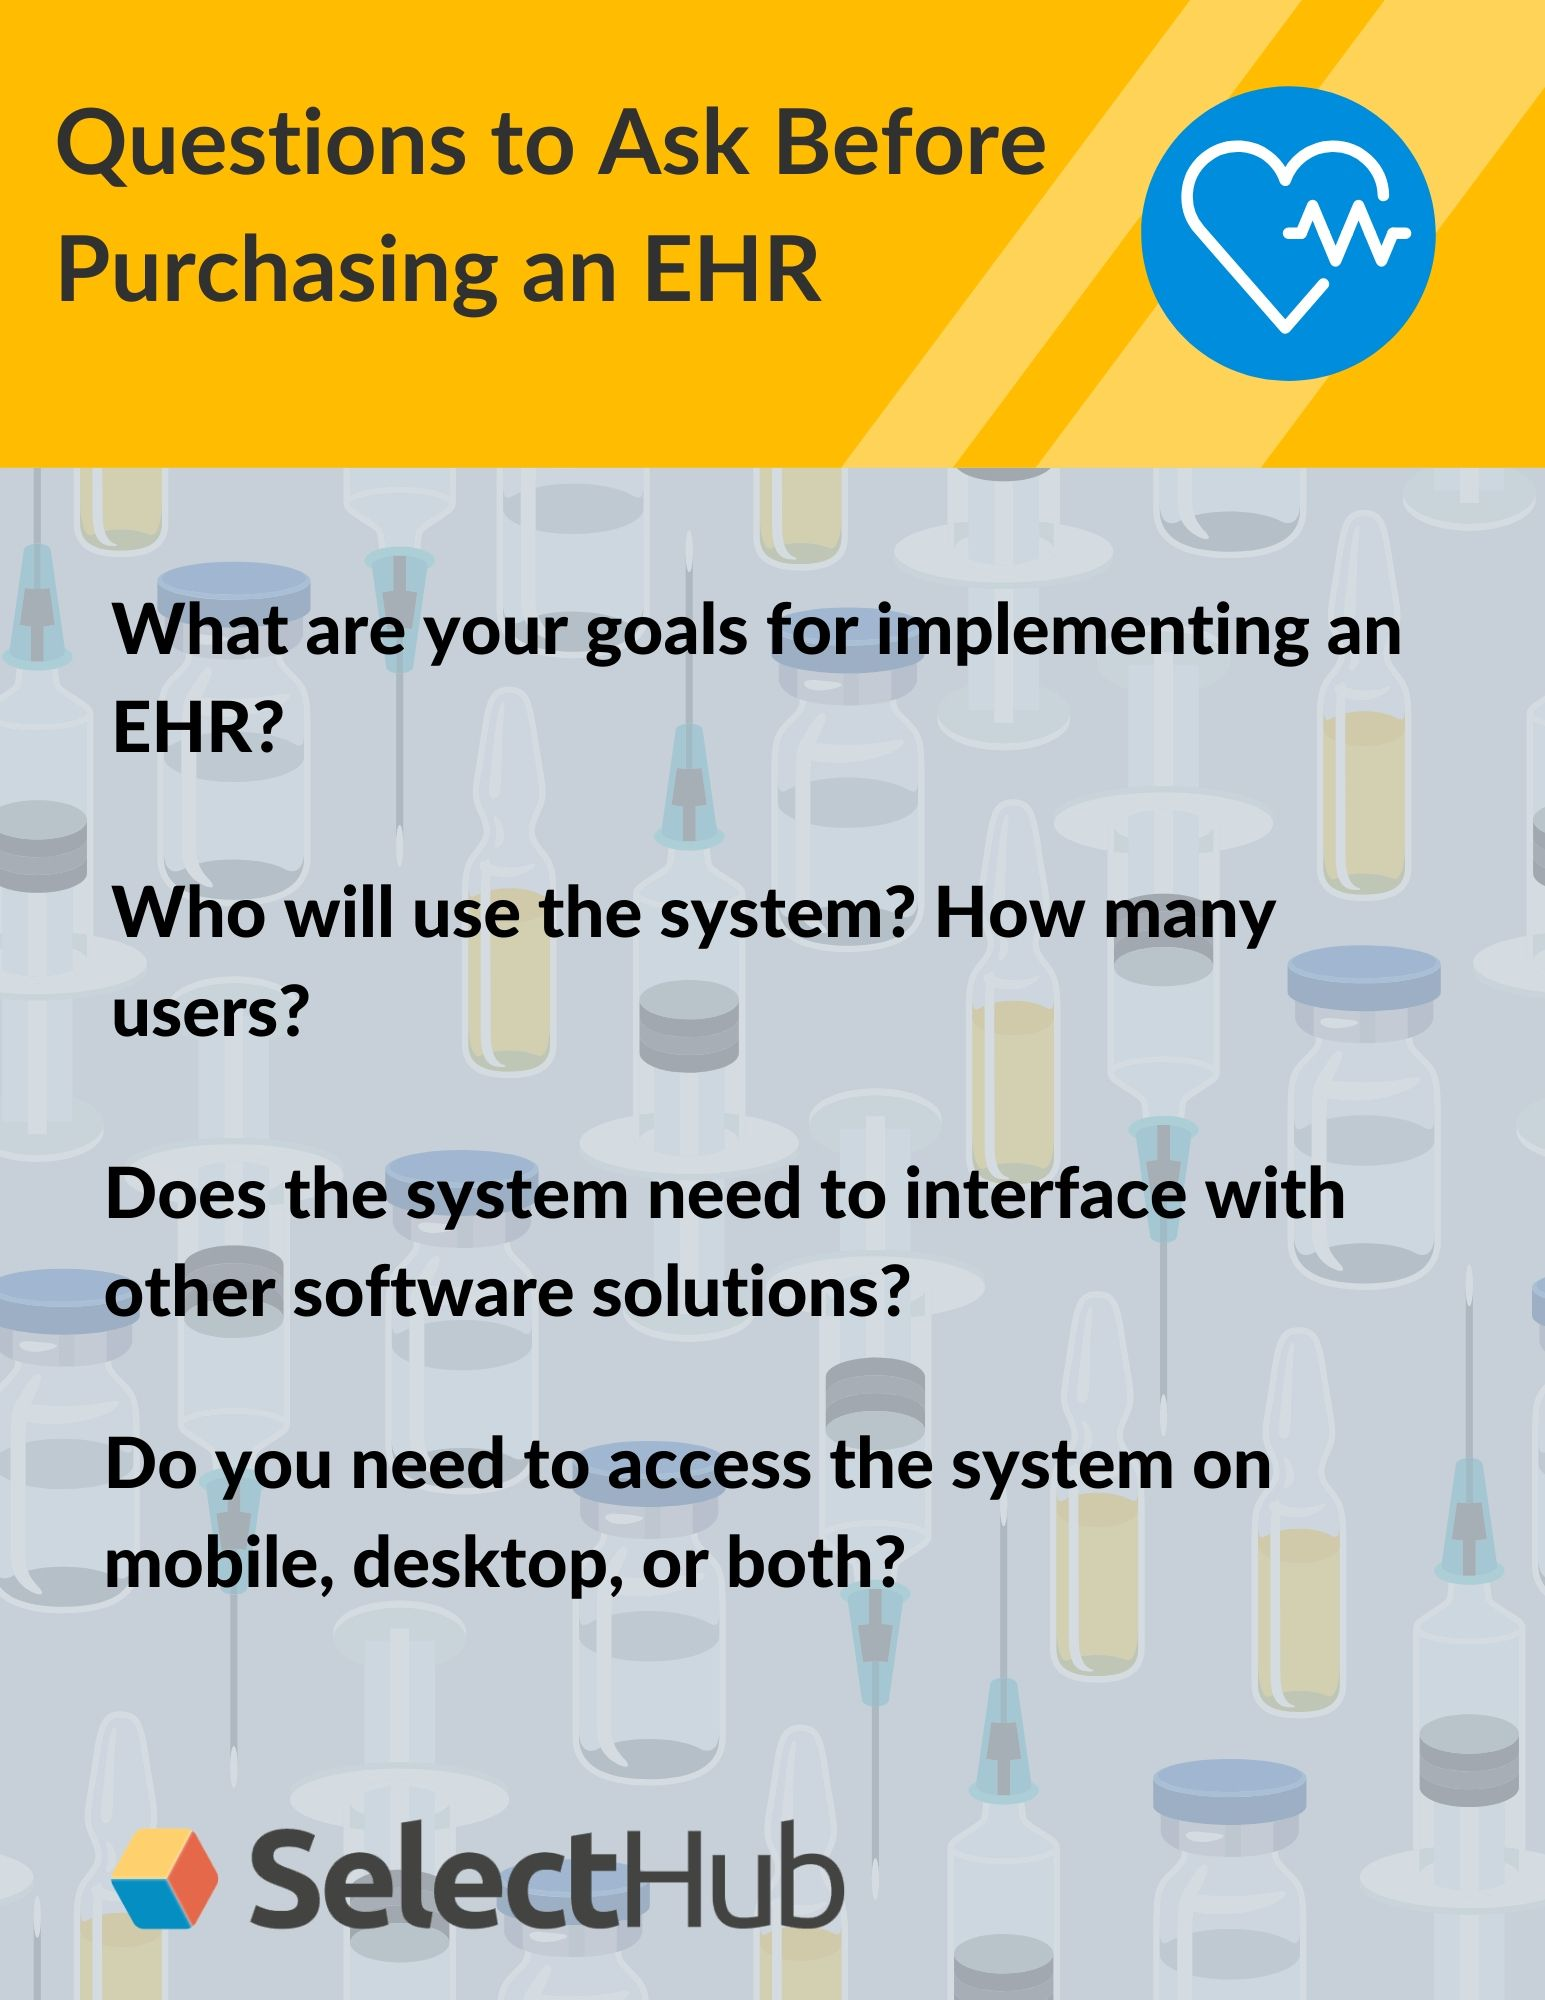 Questions to Ask Before Purchasing an EHR